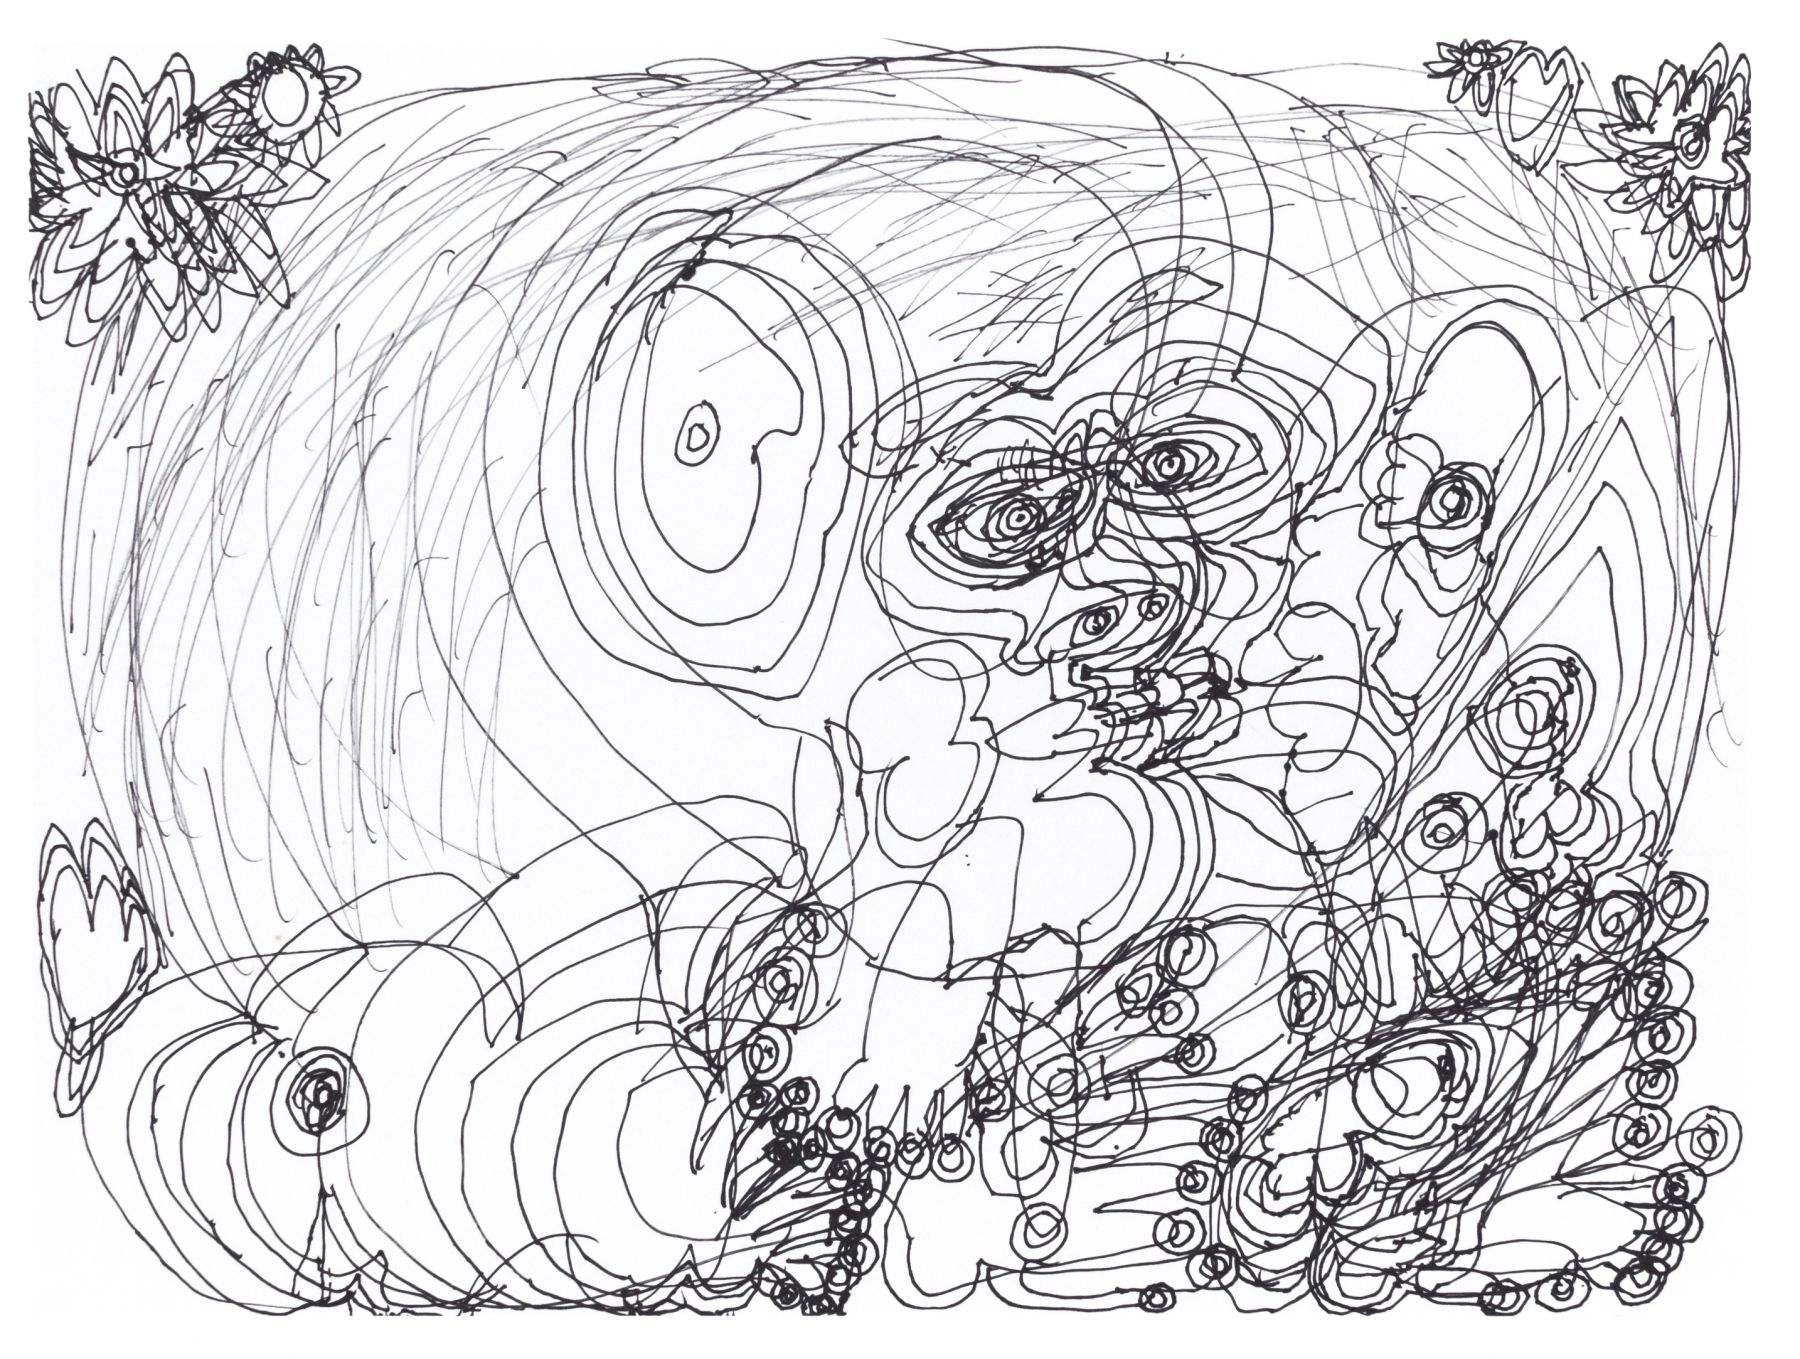 Dwight Mackintosh(1906-1999) USA, Untitled, 1994, Ink on paper, 11 x 15 in